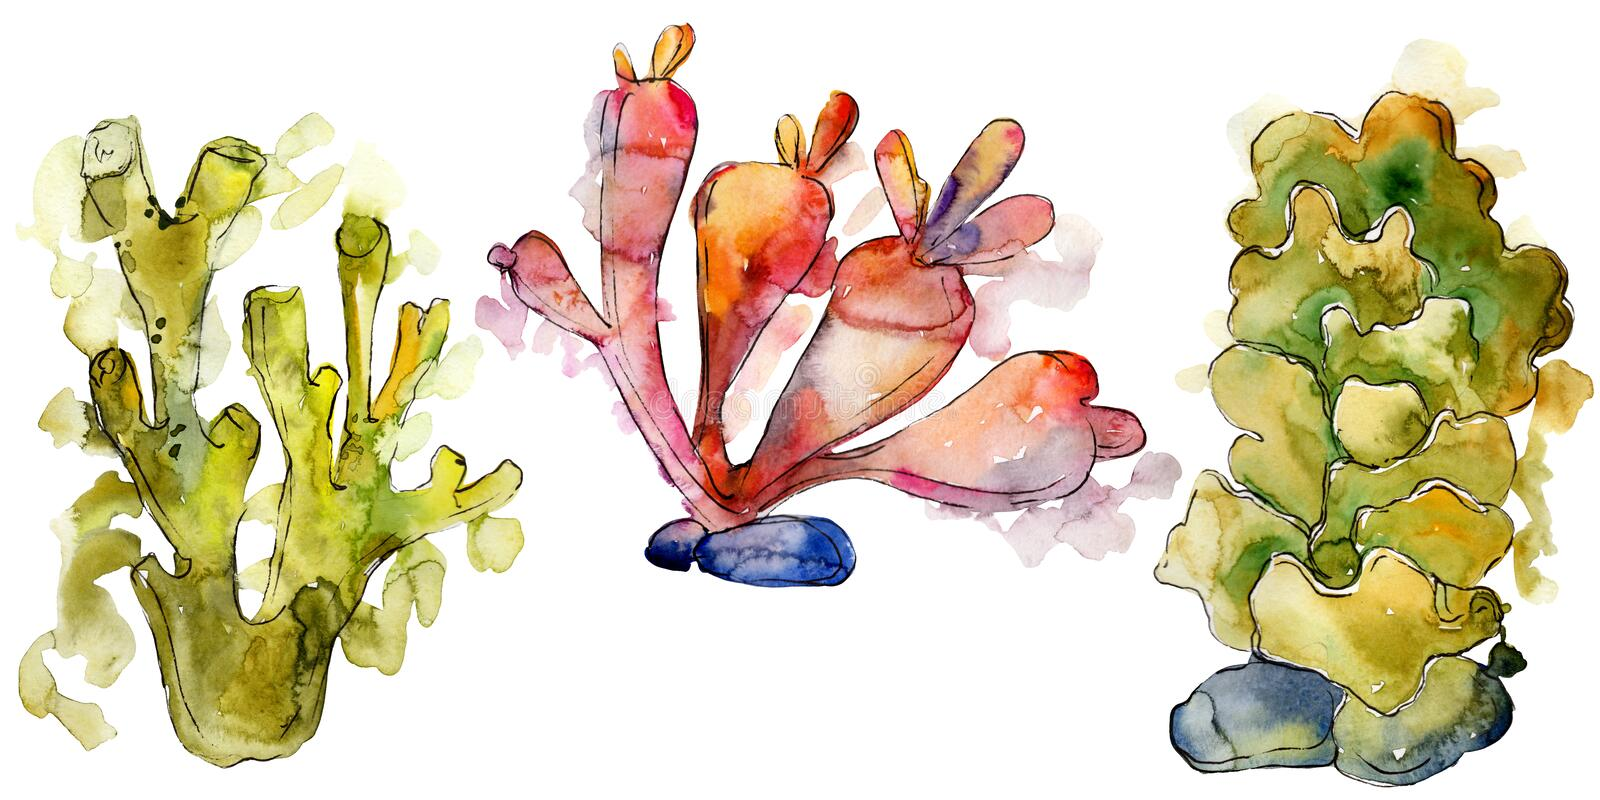 Colorful aquatic underwater nature coral reef. Watercolor background set. Isolated corals illustration element. Colorful aquatic underwater nature coral reef stock images